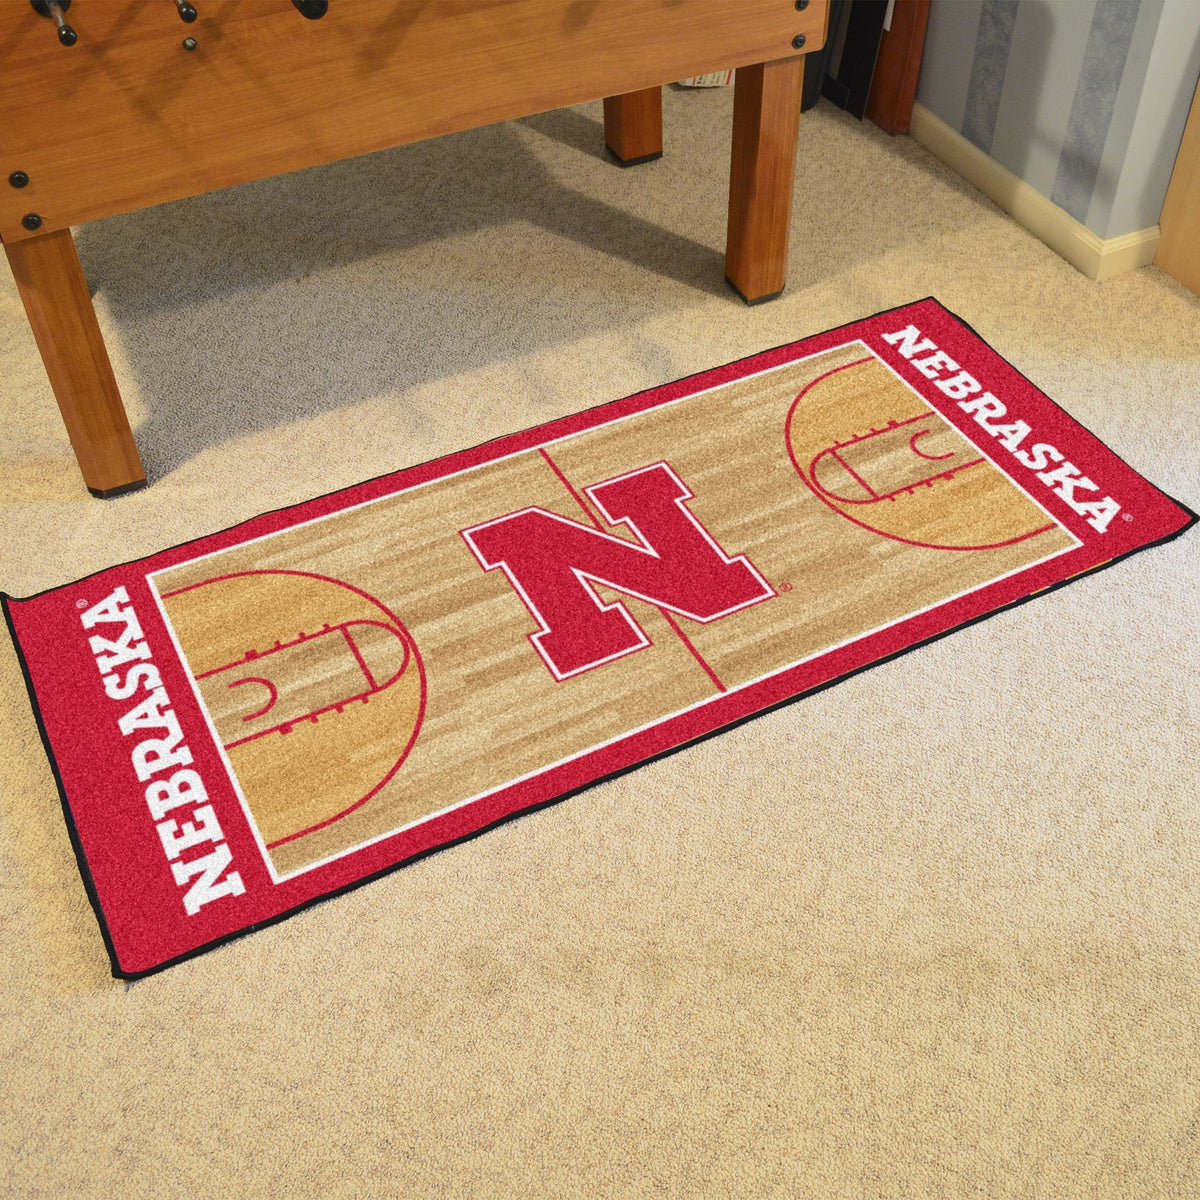 Collegiate - NCAA Basketball Runner Collegiate Mats, Rectangular Mats, NCAA Basketball Runner, Collegiate, Home Fan Mats Nebraska